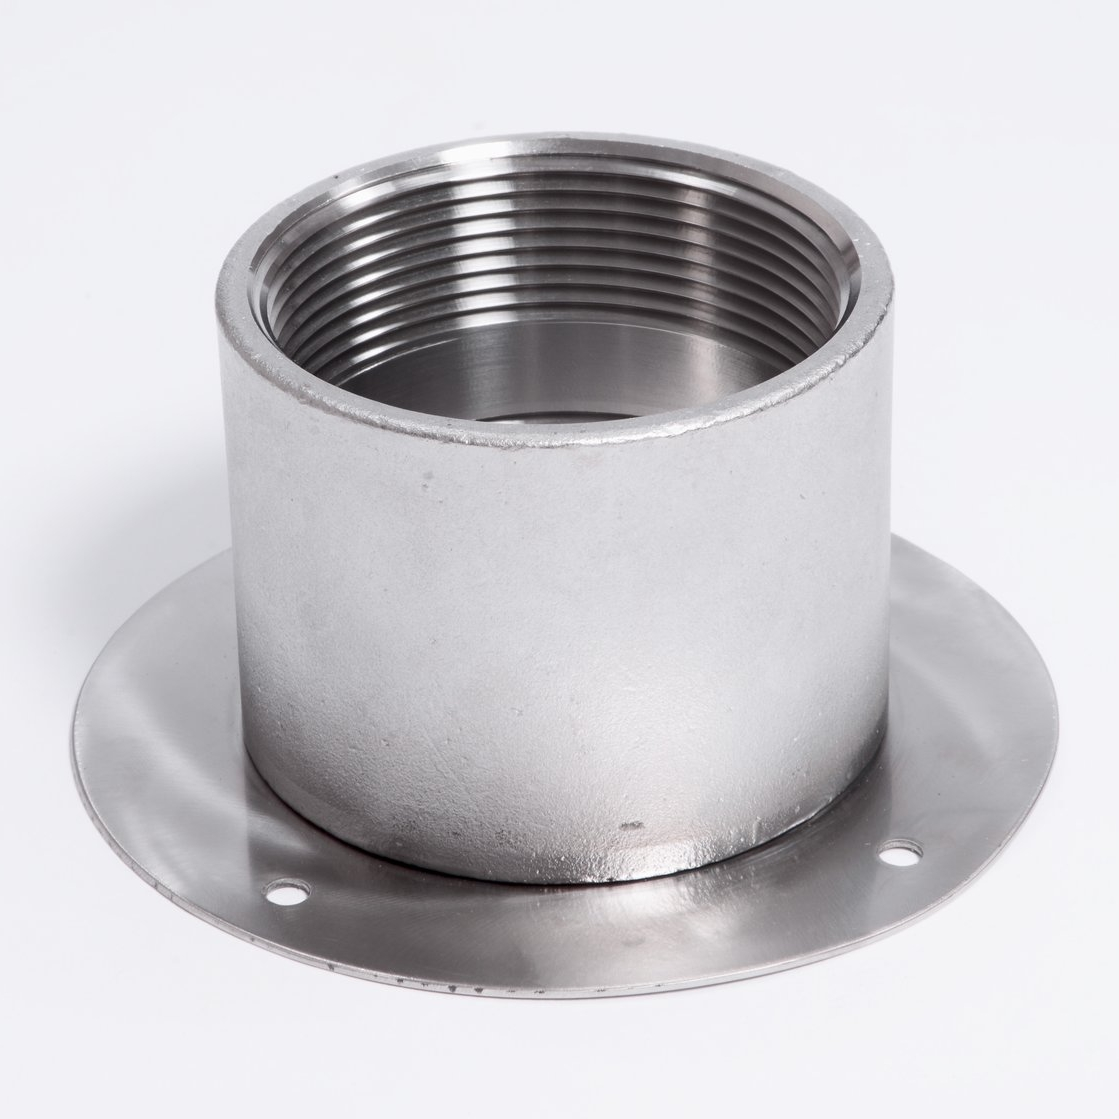 FPT Coupler: Threaded stainless steel connection.